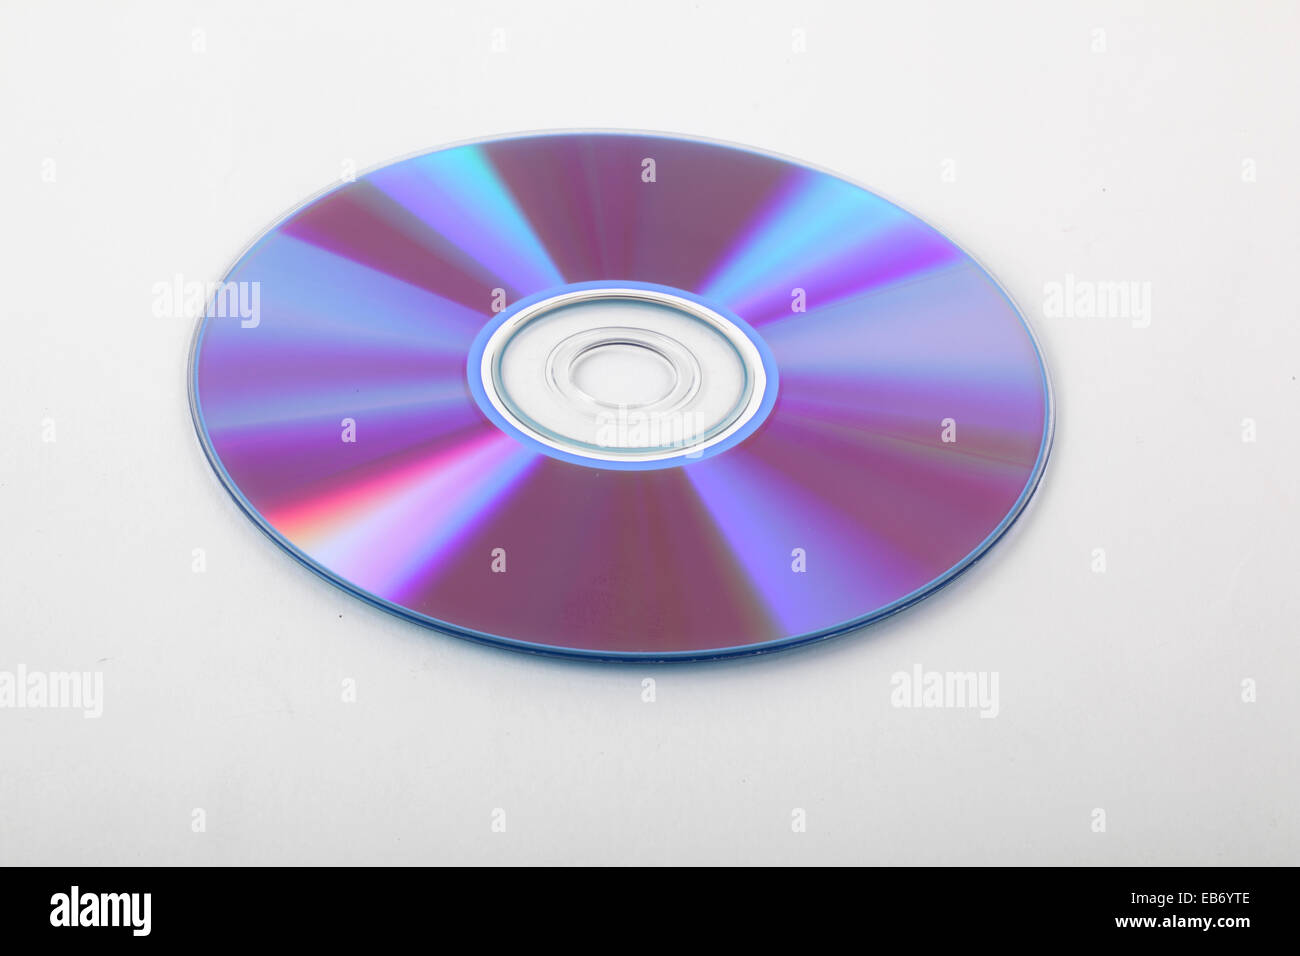 A stack of recordable discs - Stock Image